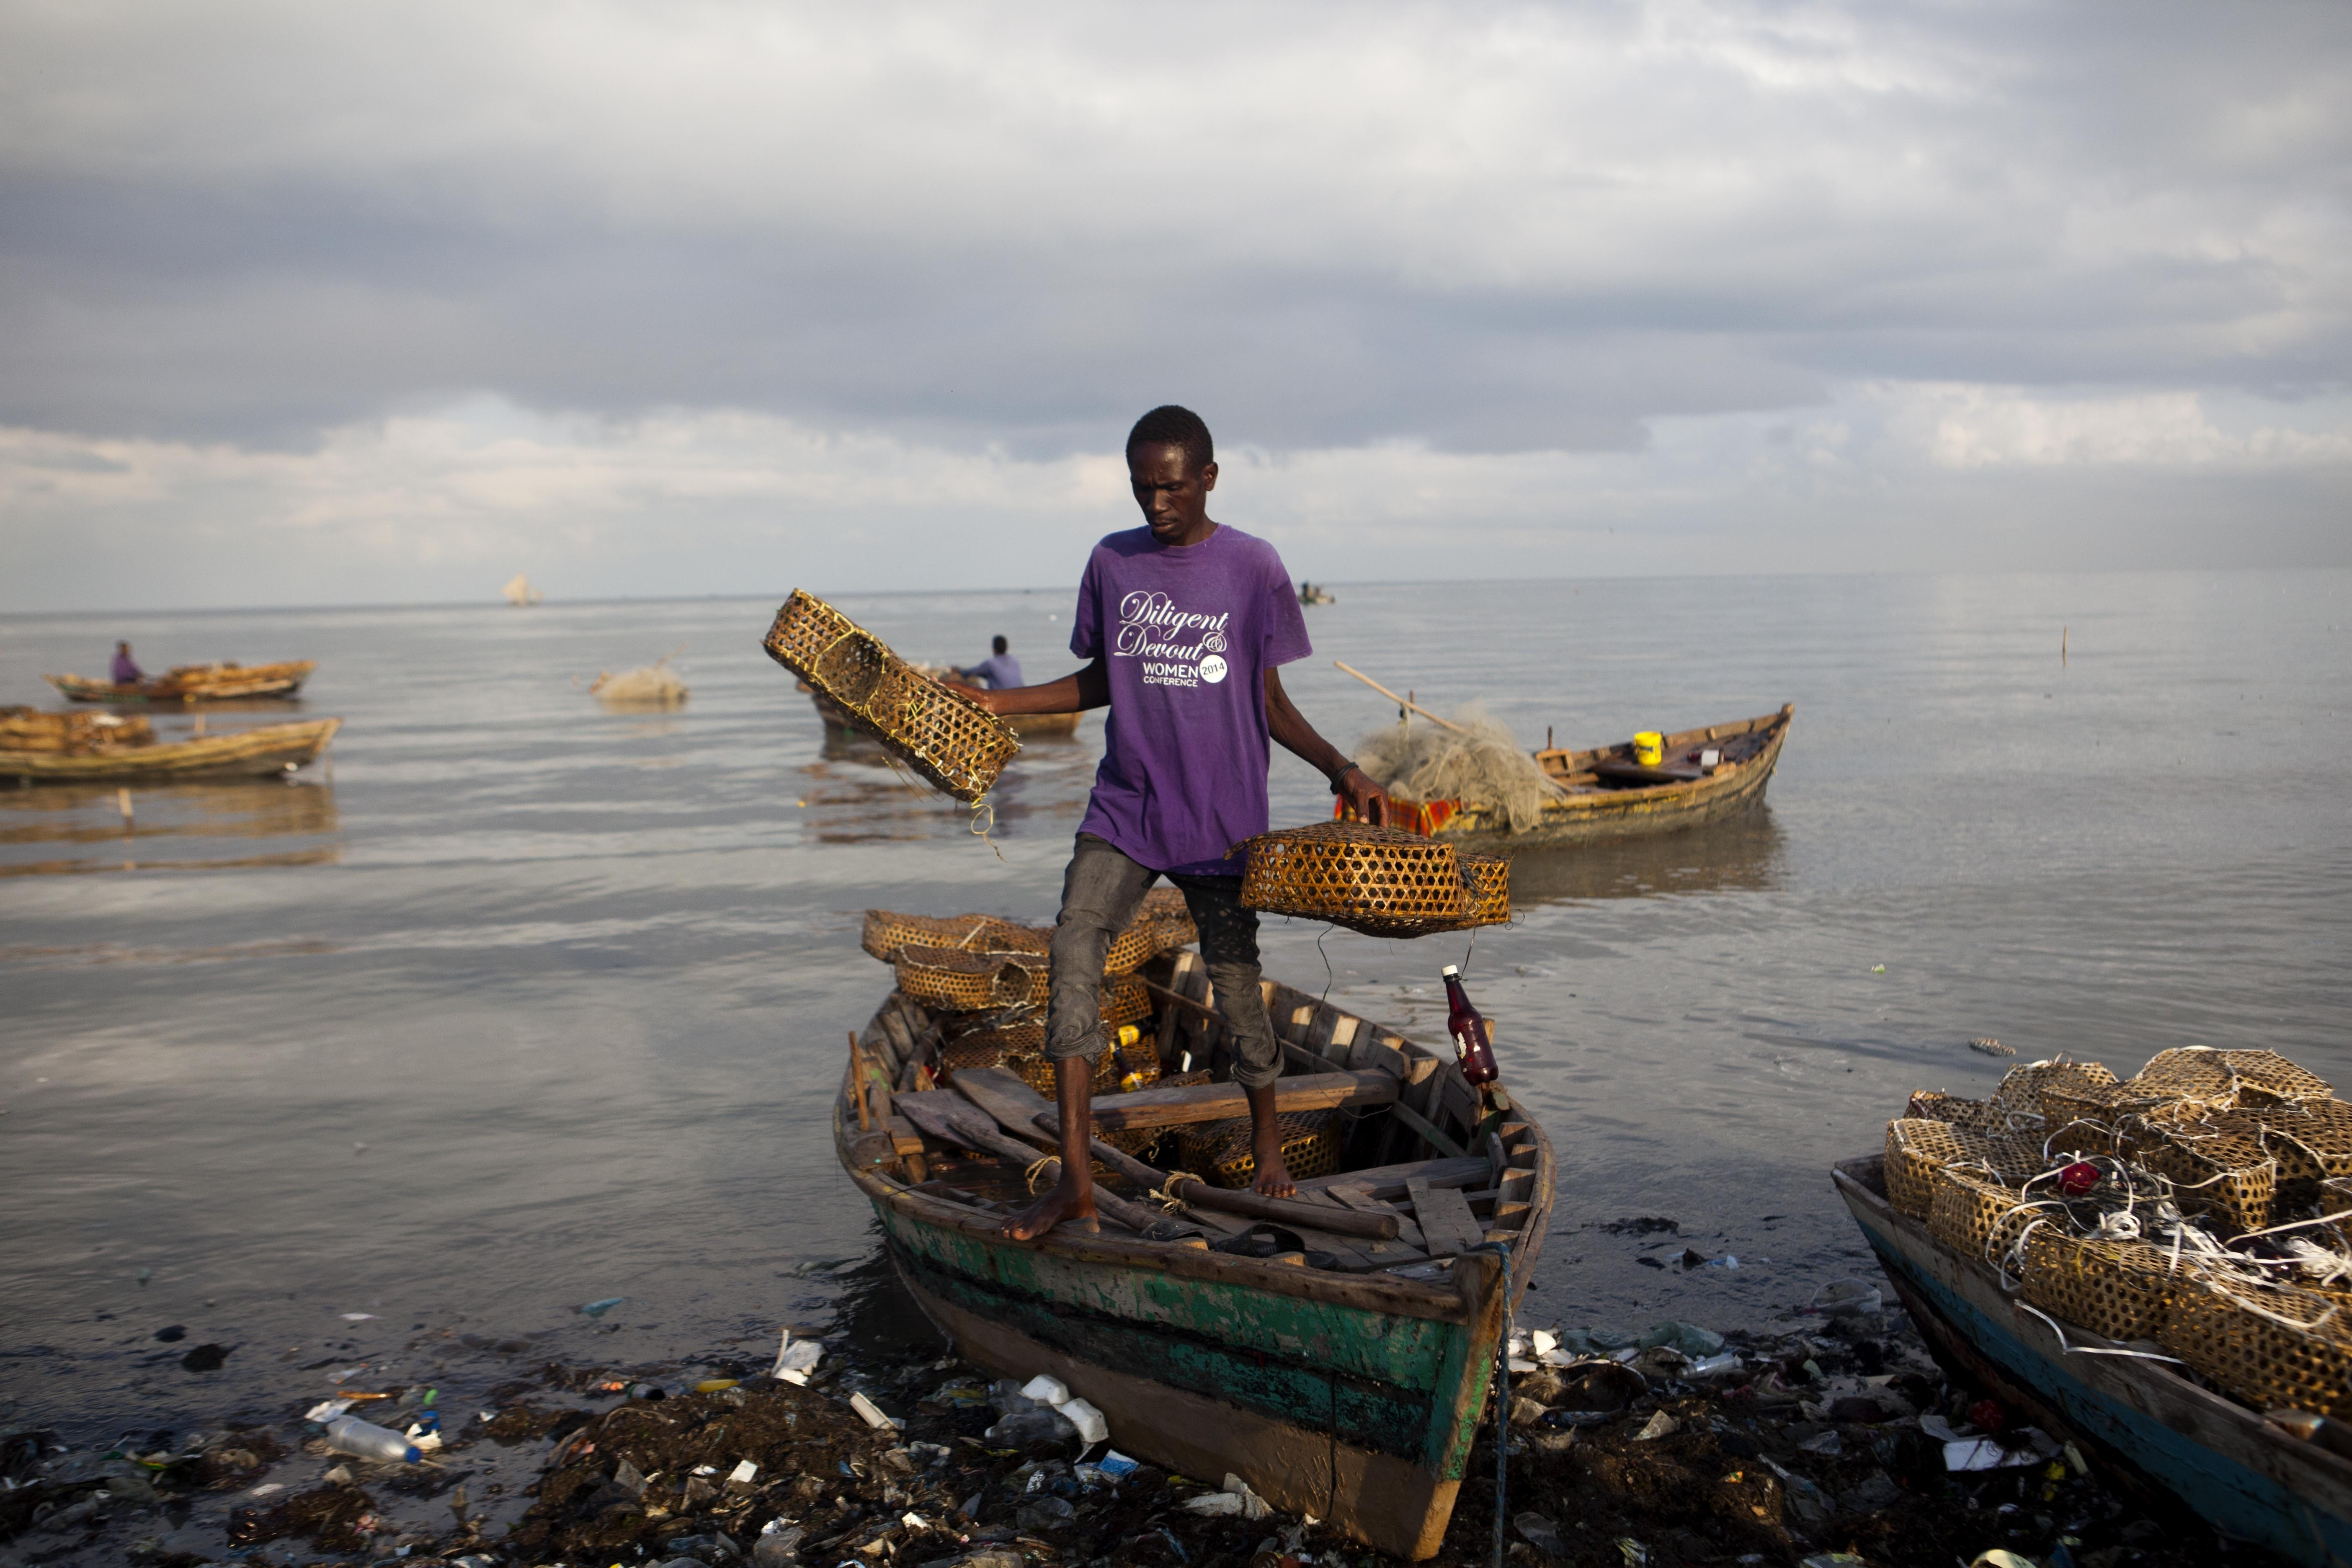 A fisherman removes equipment from his wooden boat in Port-au-Prince, Haiti, Wednesday, Sept. 6, 2017.